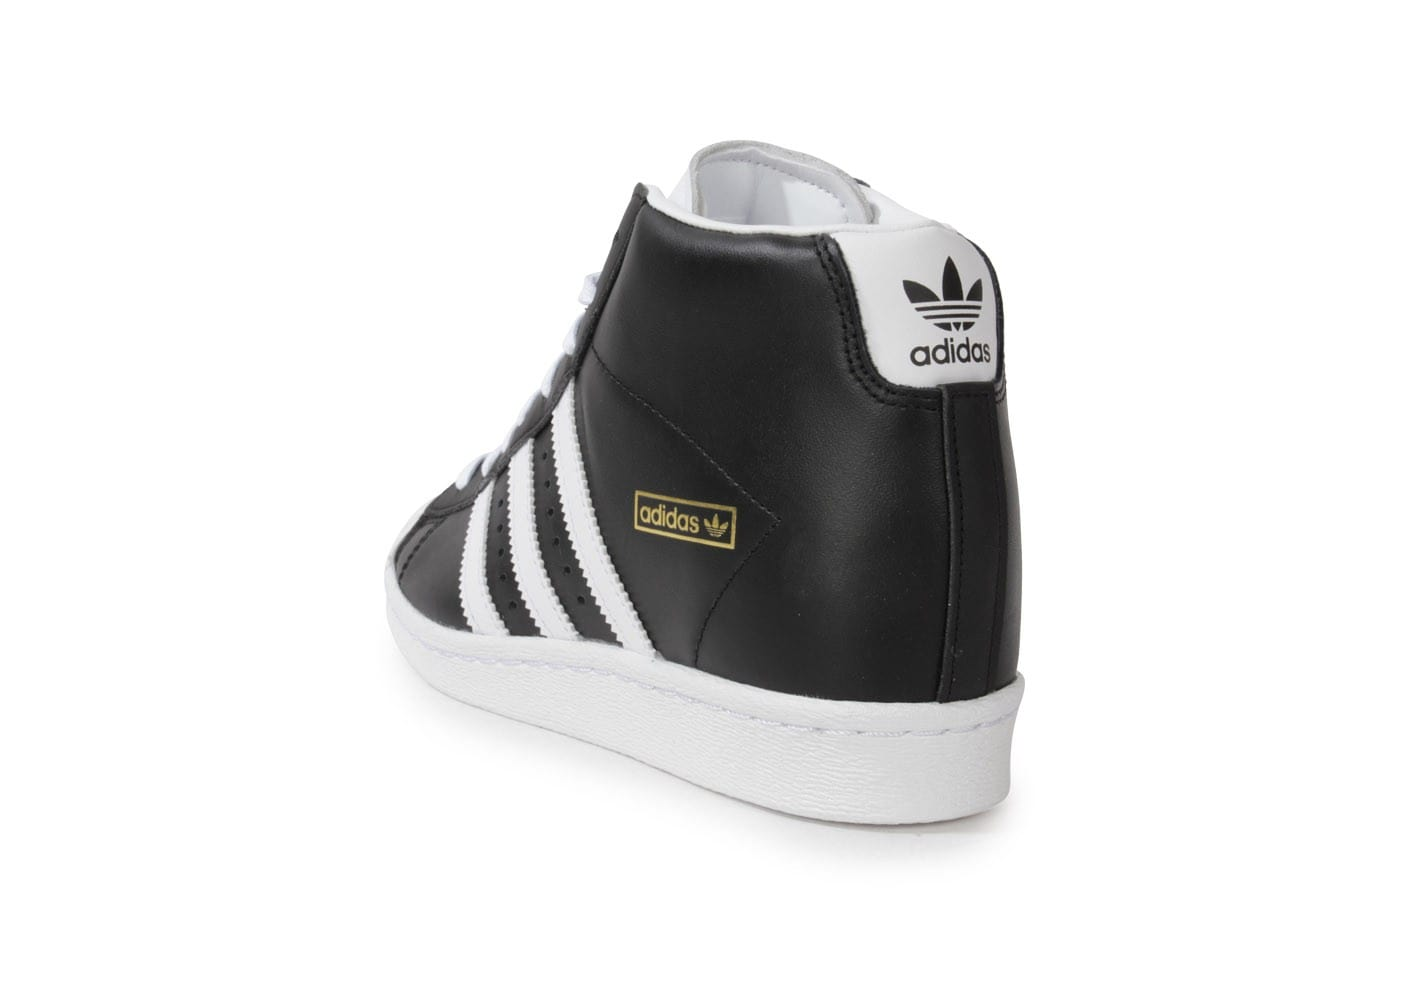 ... Chaussures adidas Superstar Up Compensee Noire vue arrière ...